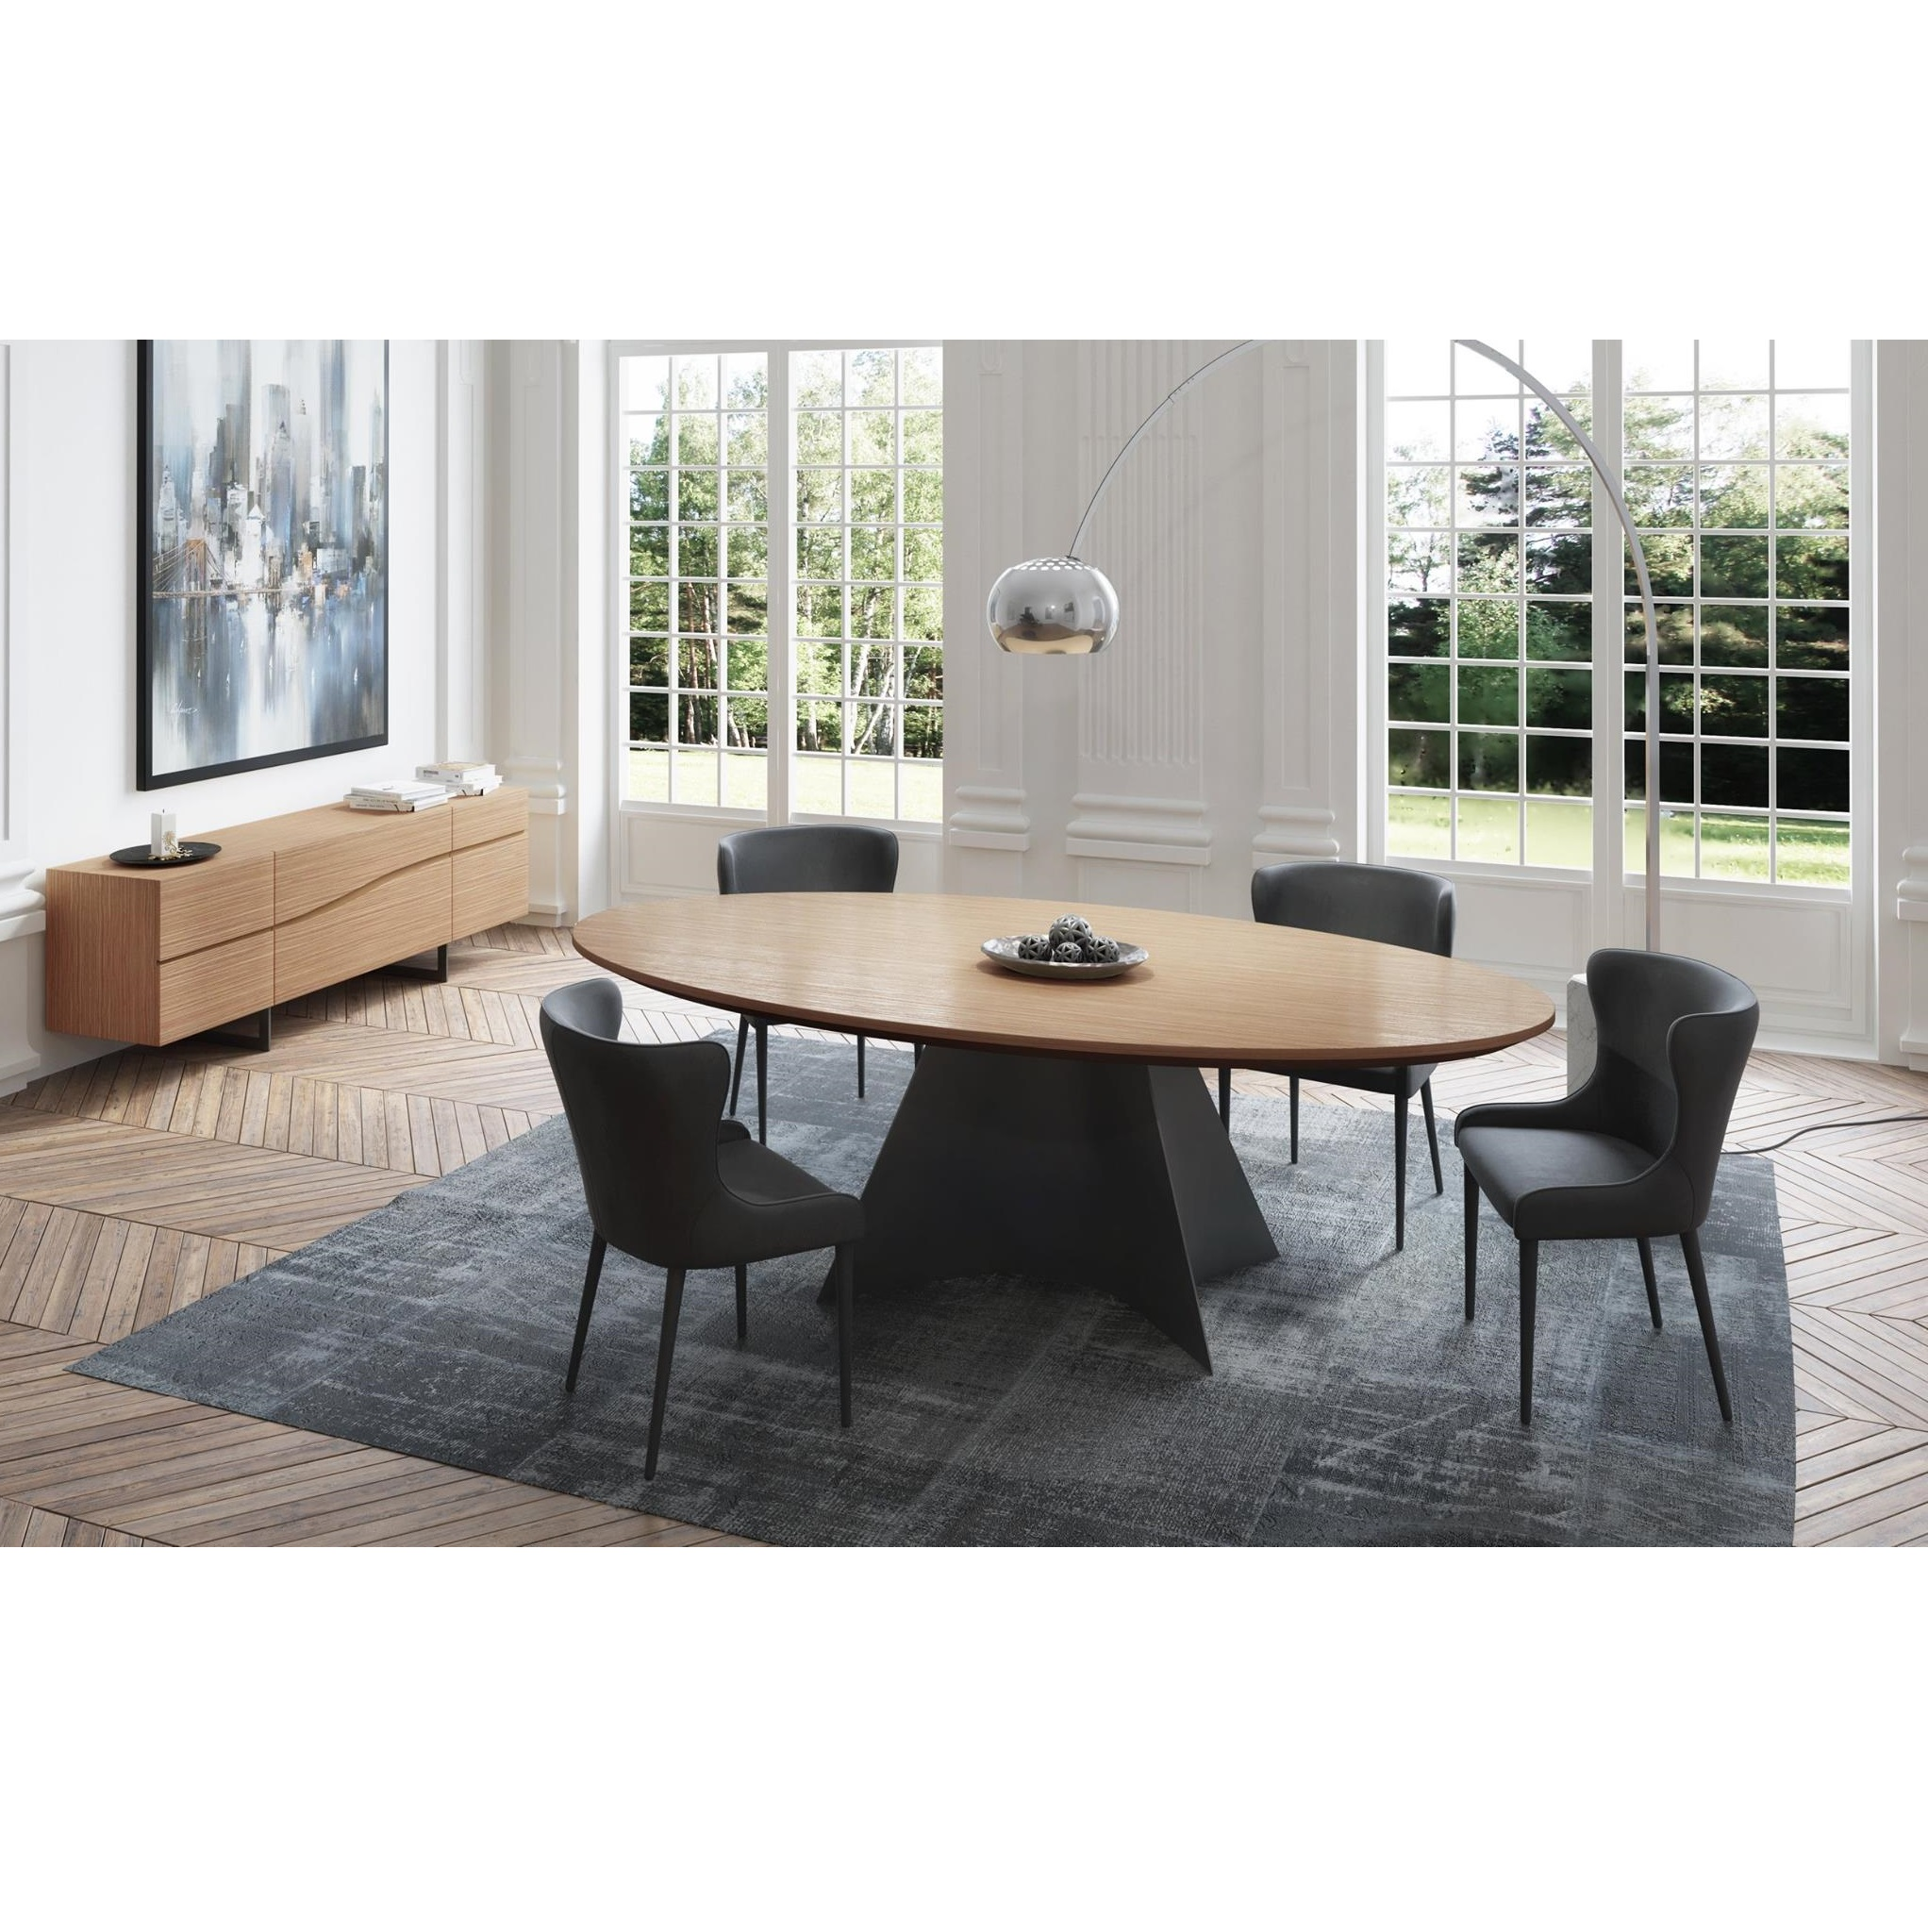 Vincent Oval Dining Table Mikaza Meubles Modernes Montreal Modern Furniture Ottawa